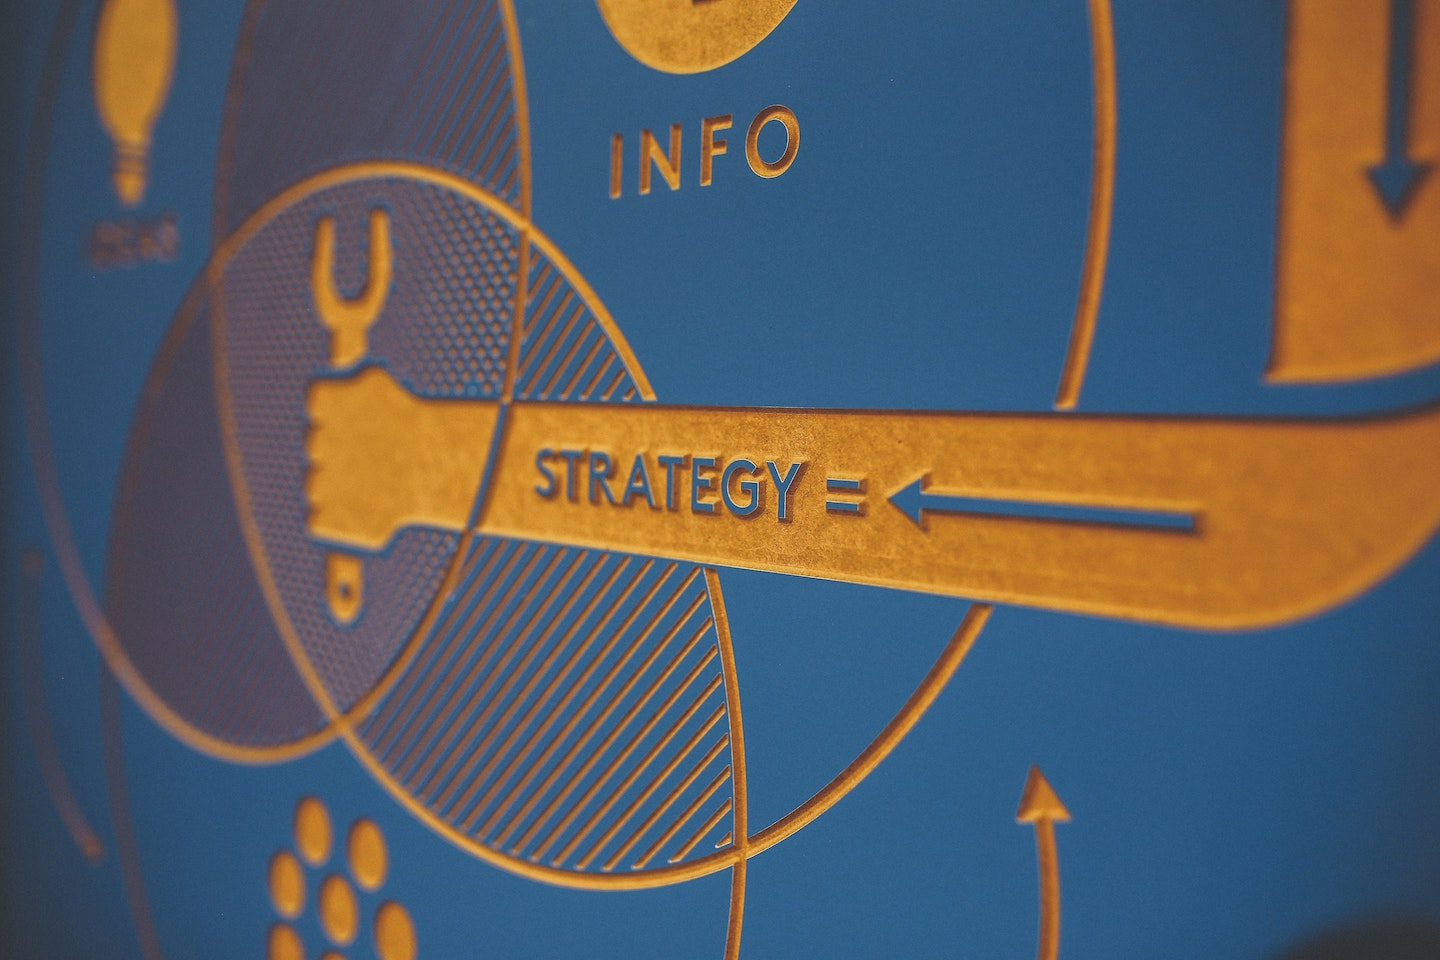 Strategy diagram of flowing arrows and business themed icons